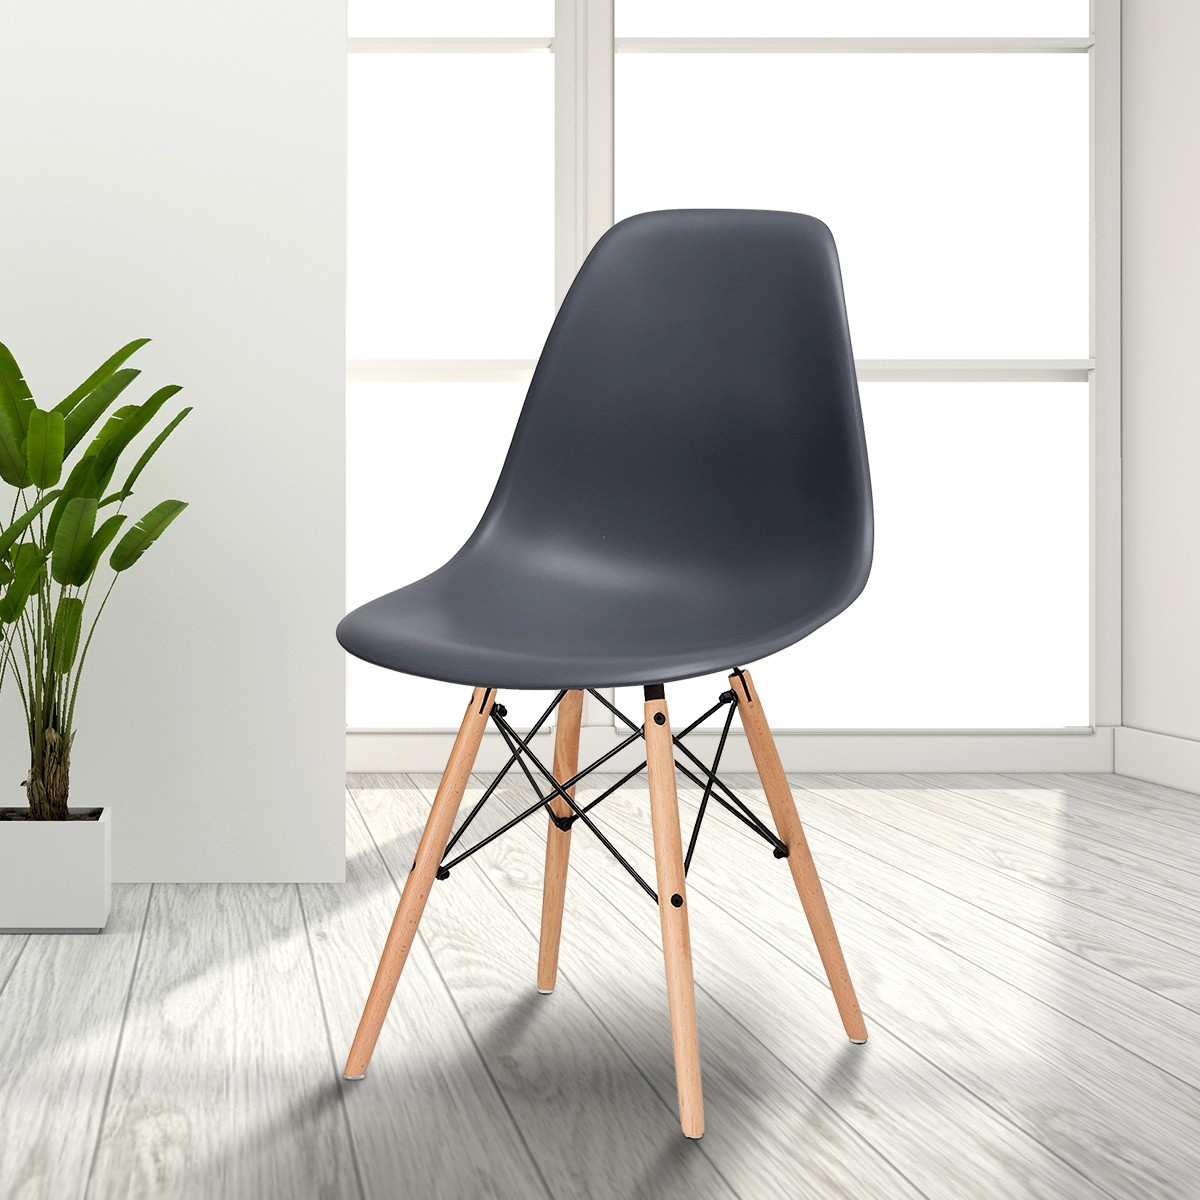 Molded Plastic Chair in Gray with Wood Legs (T811E006-GY)